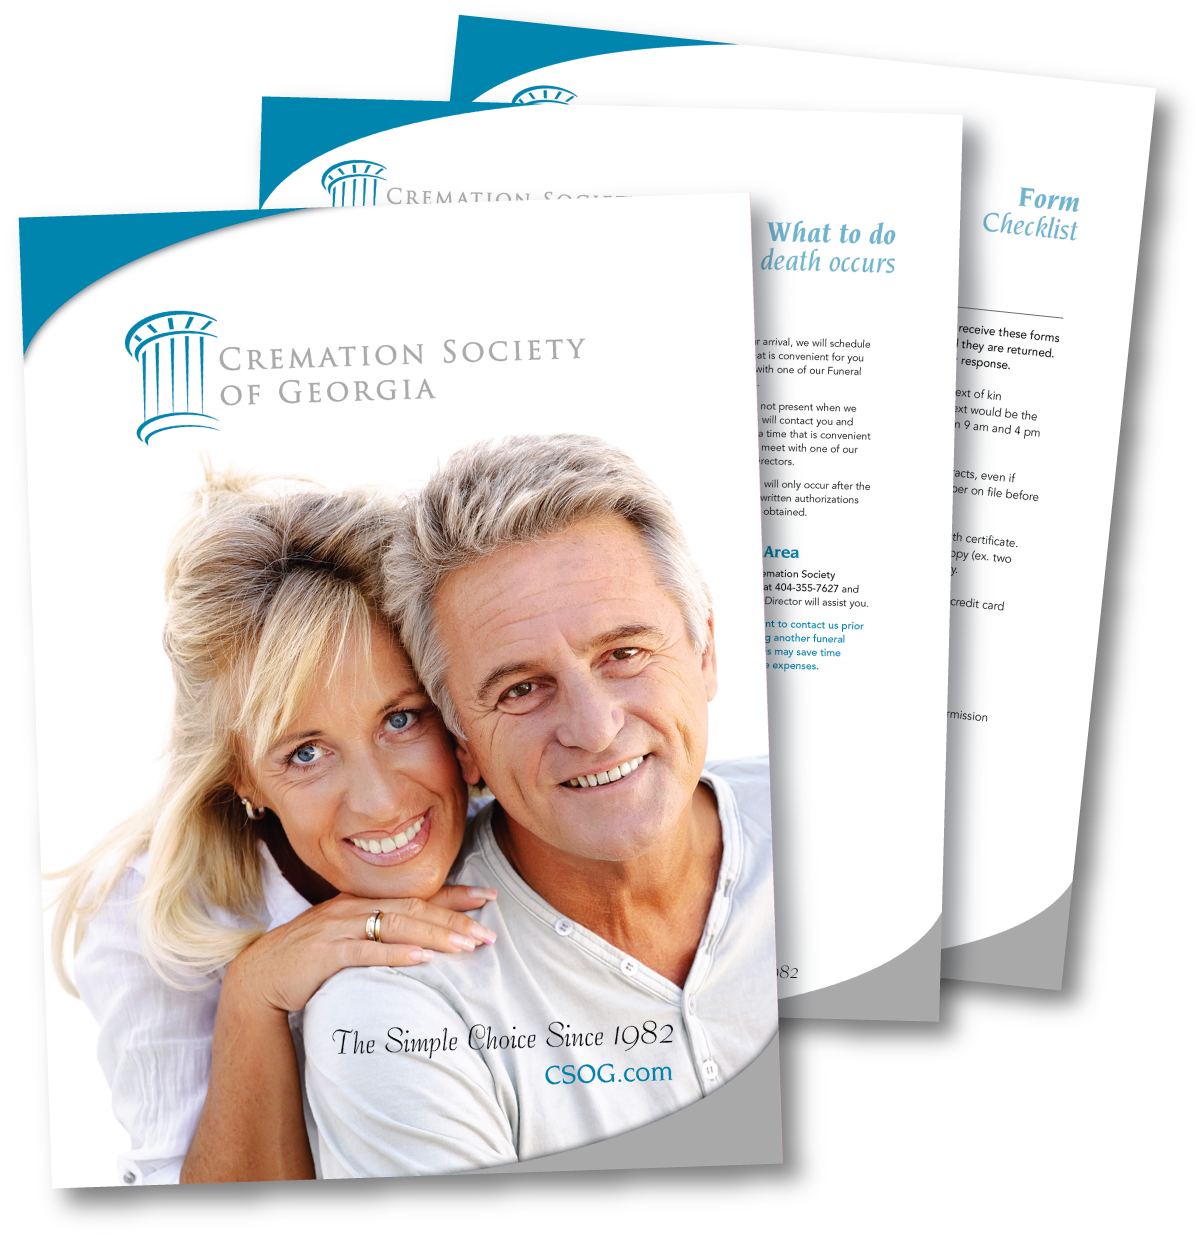 Get a FREE Planning Kit with information on burial and cremation assistance